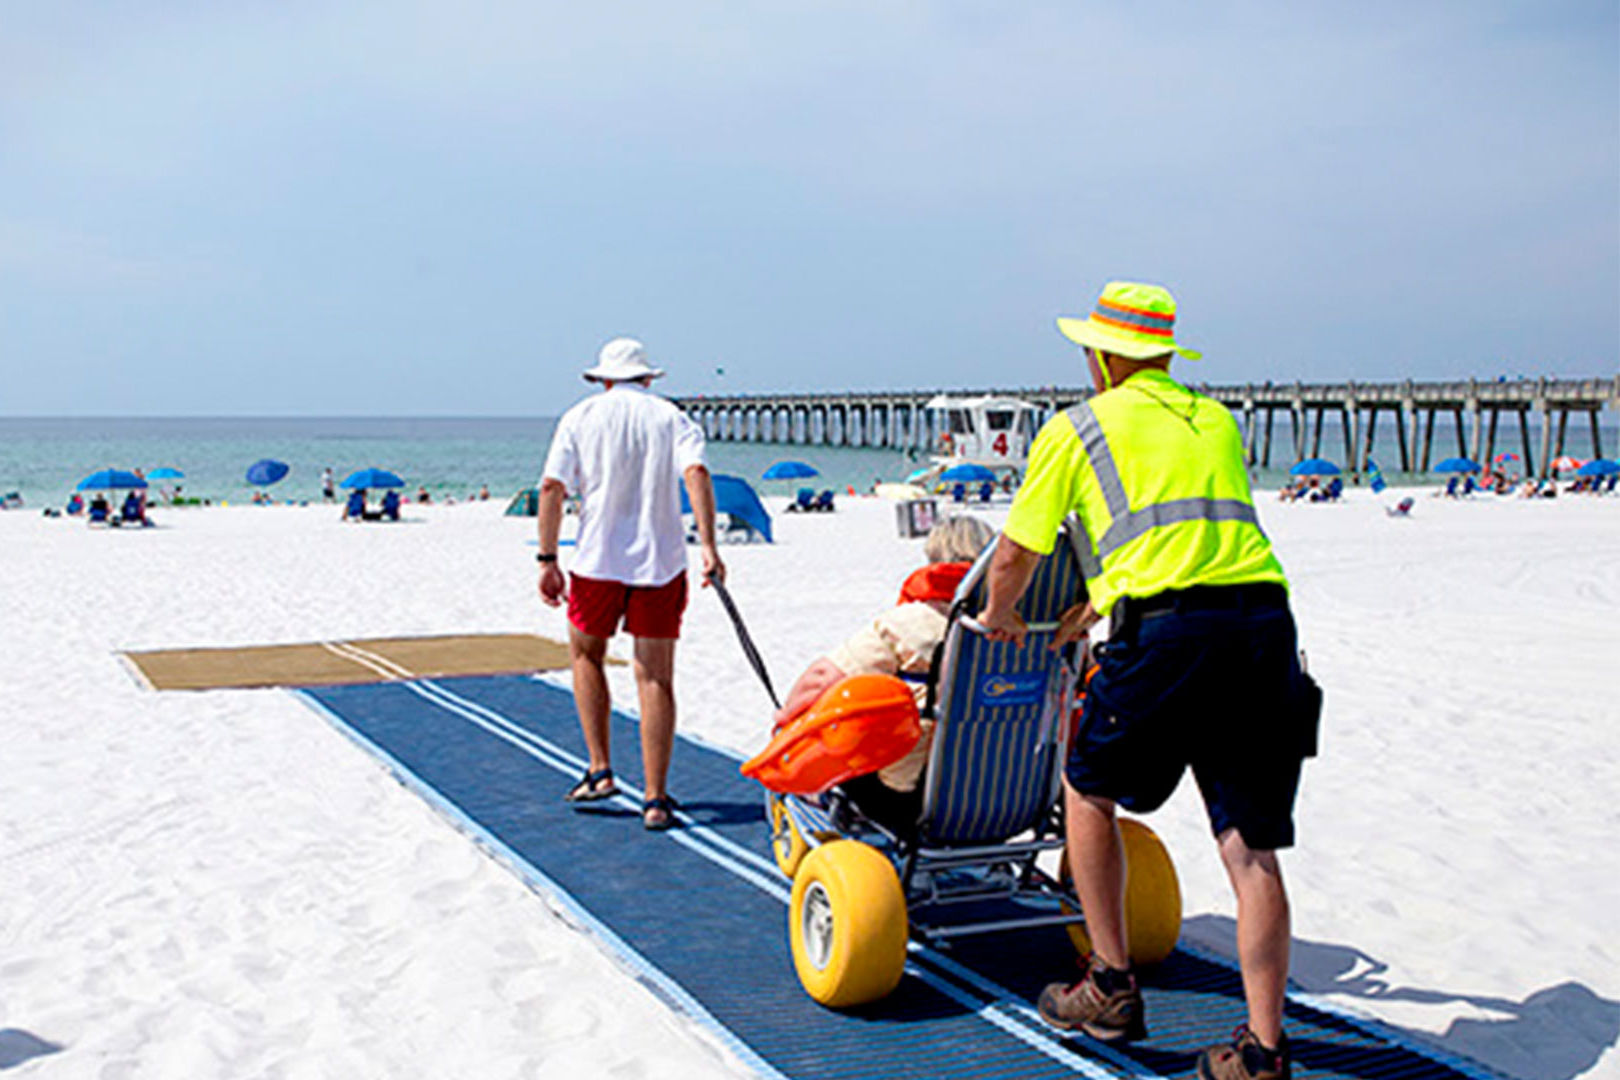 Pensacola Beaches Now Accessible to People in Wheelchairs Thanks to New Improvements